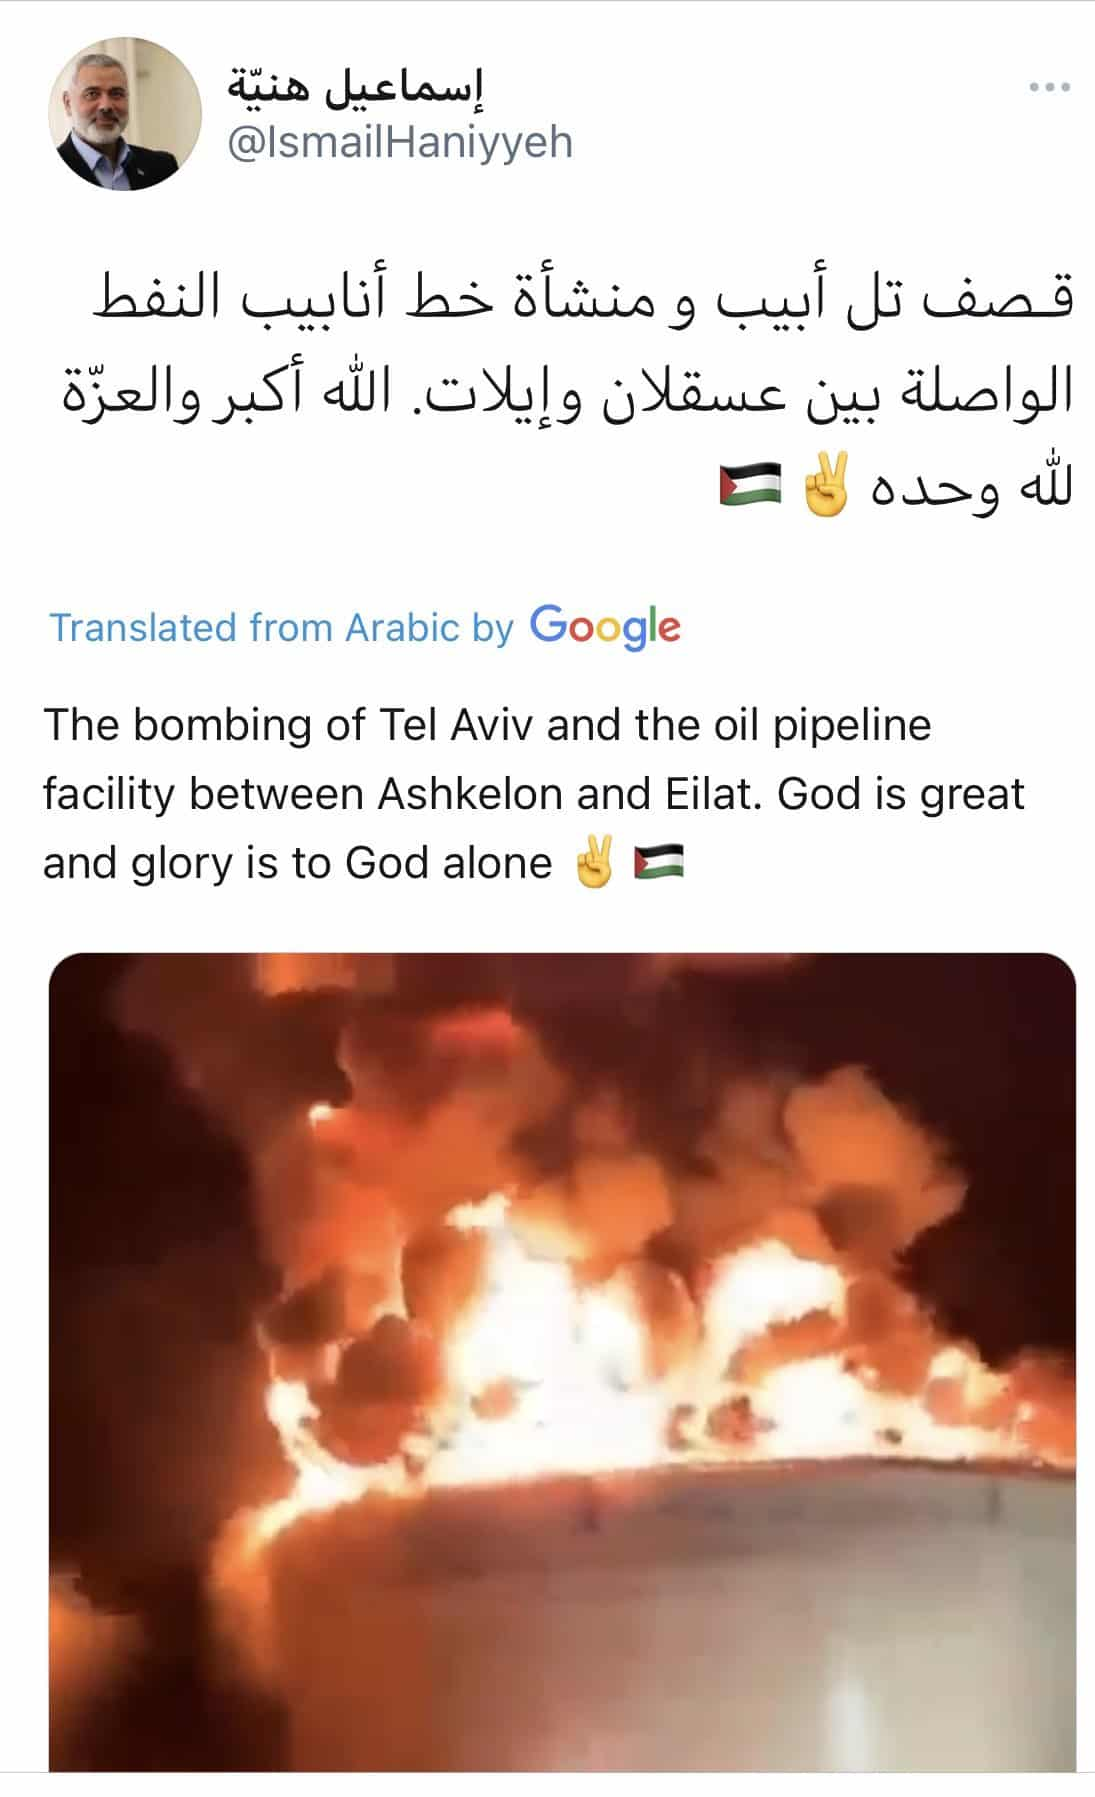 Top Hamas Terrorist Leaders Use Twitter to Encourage Violence While Trump is Permanently Banned 1